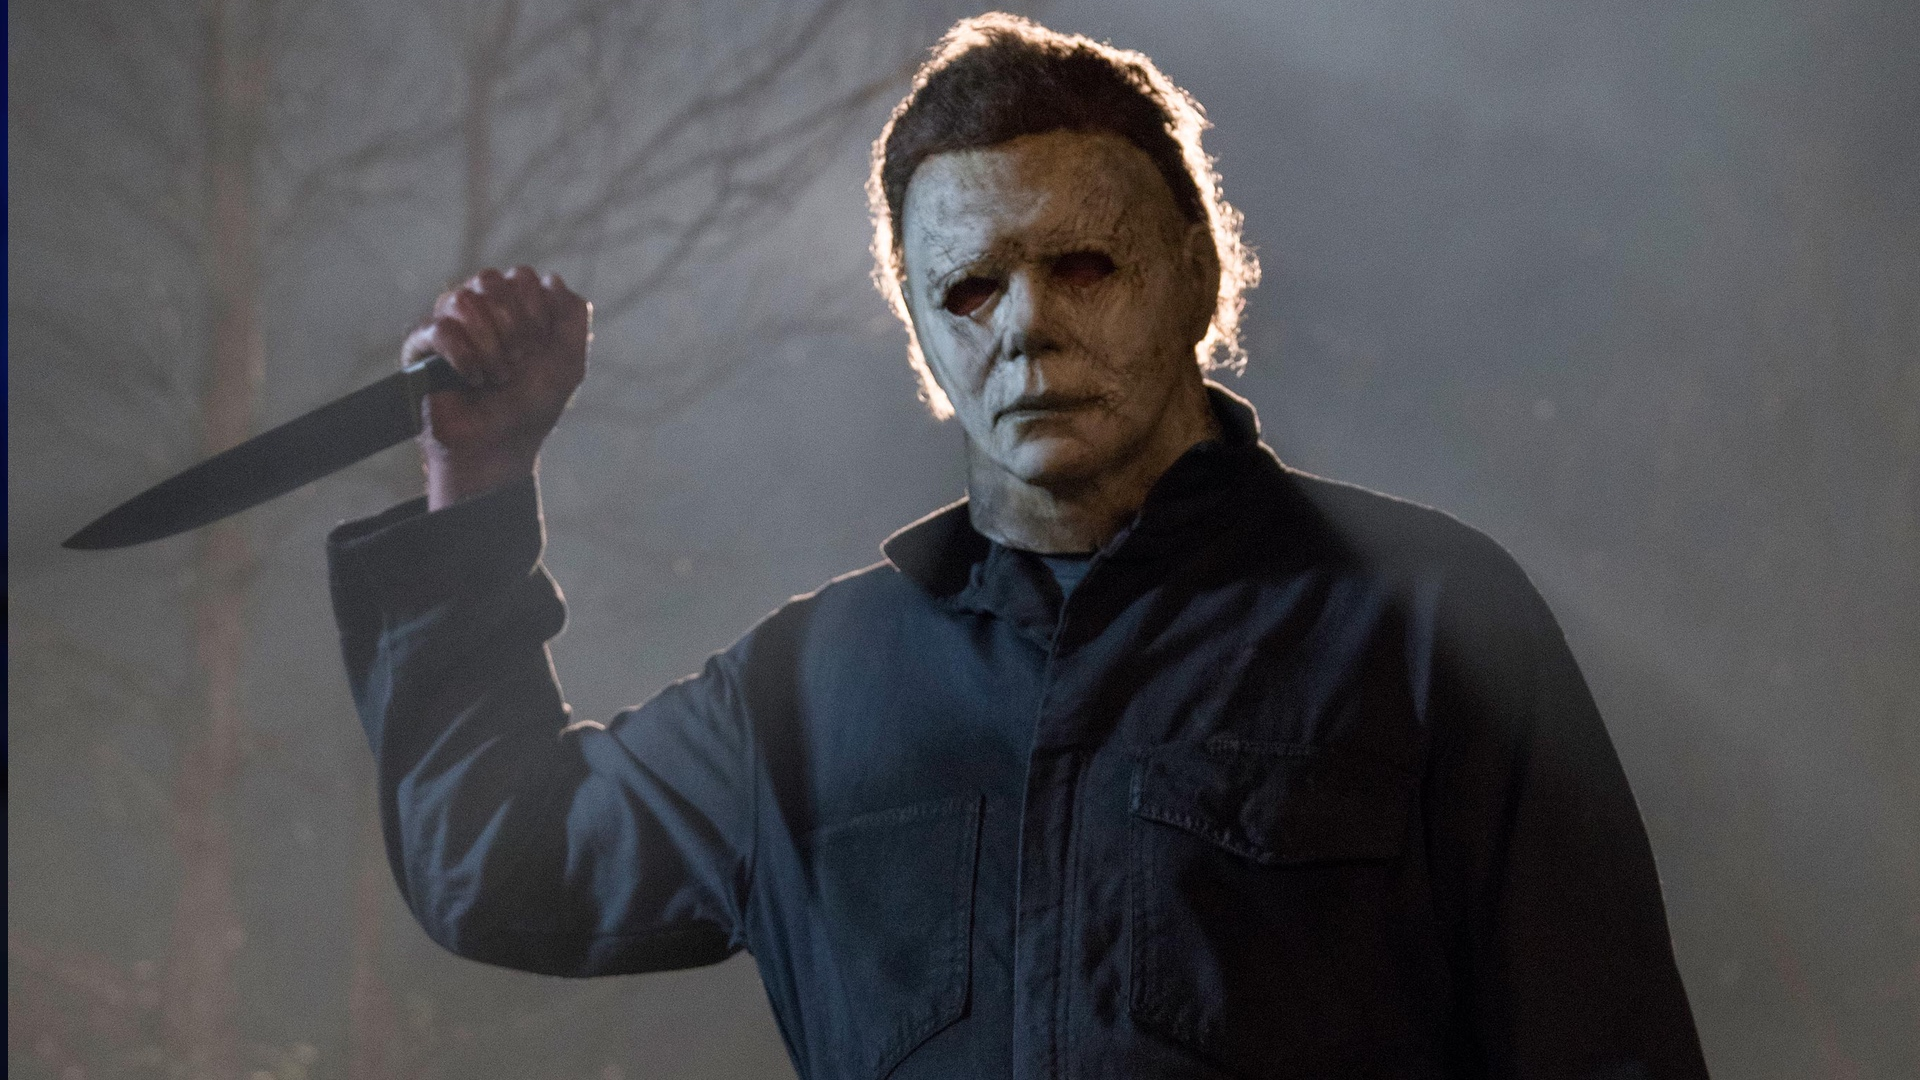 john-carpenter-confirms-halloween-kills-and-halloween-ends-sequel-for-2020-and-2021-social.jpg